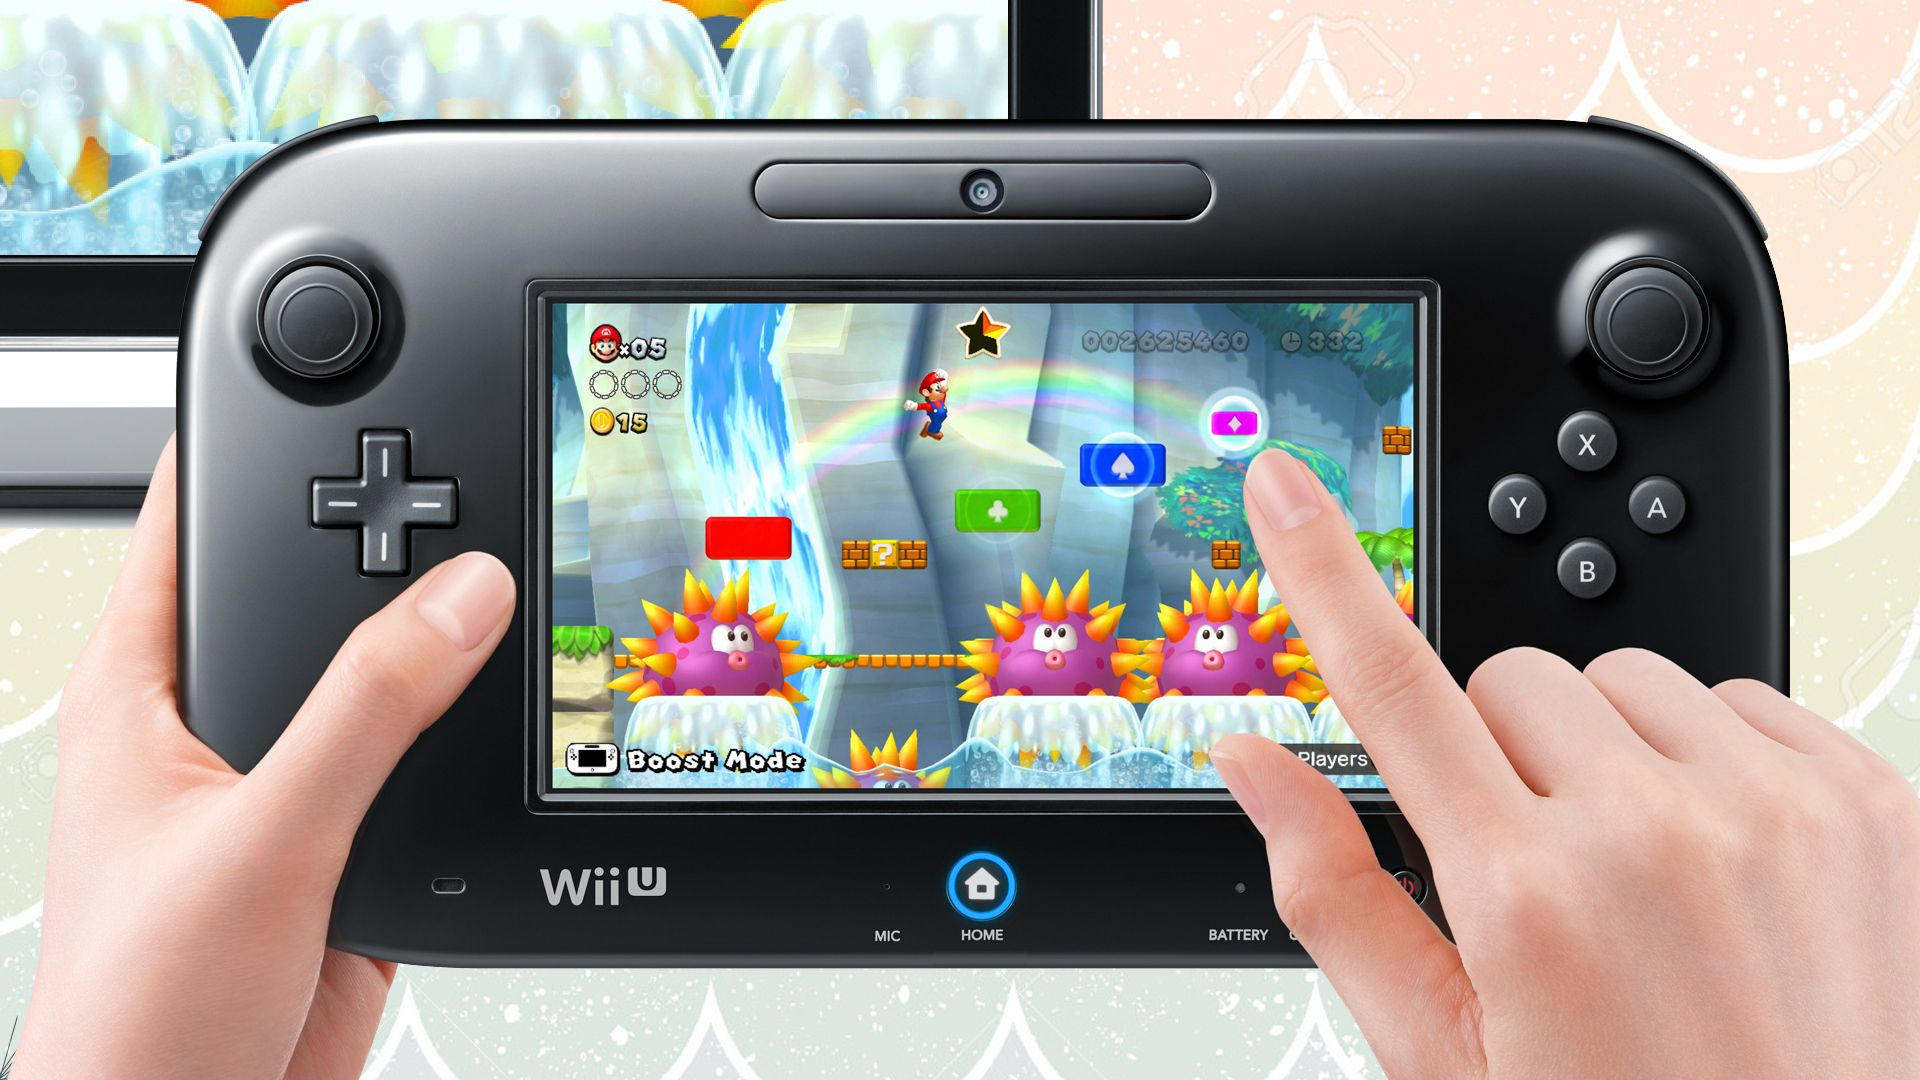 Wii U backwards compatibility explained: How to play Wii or